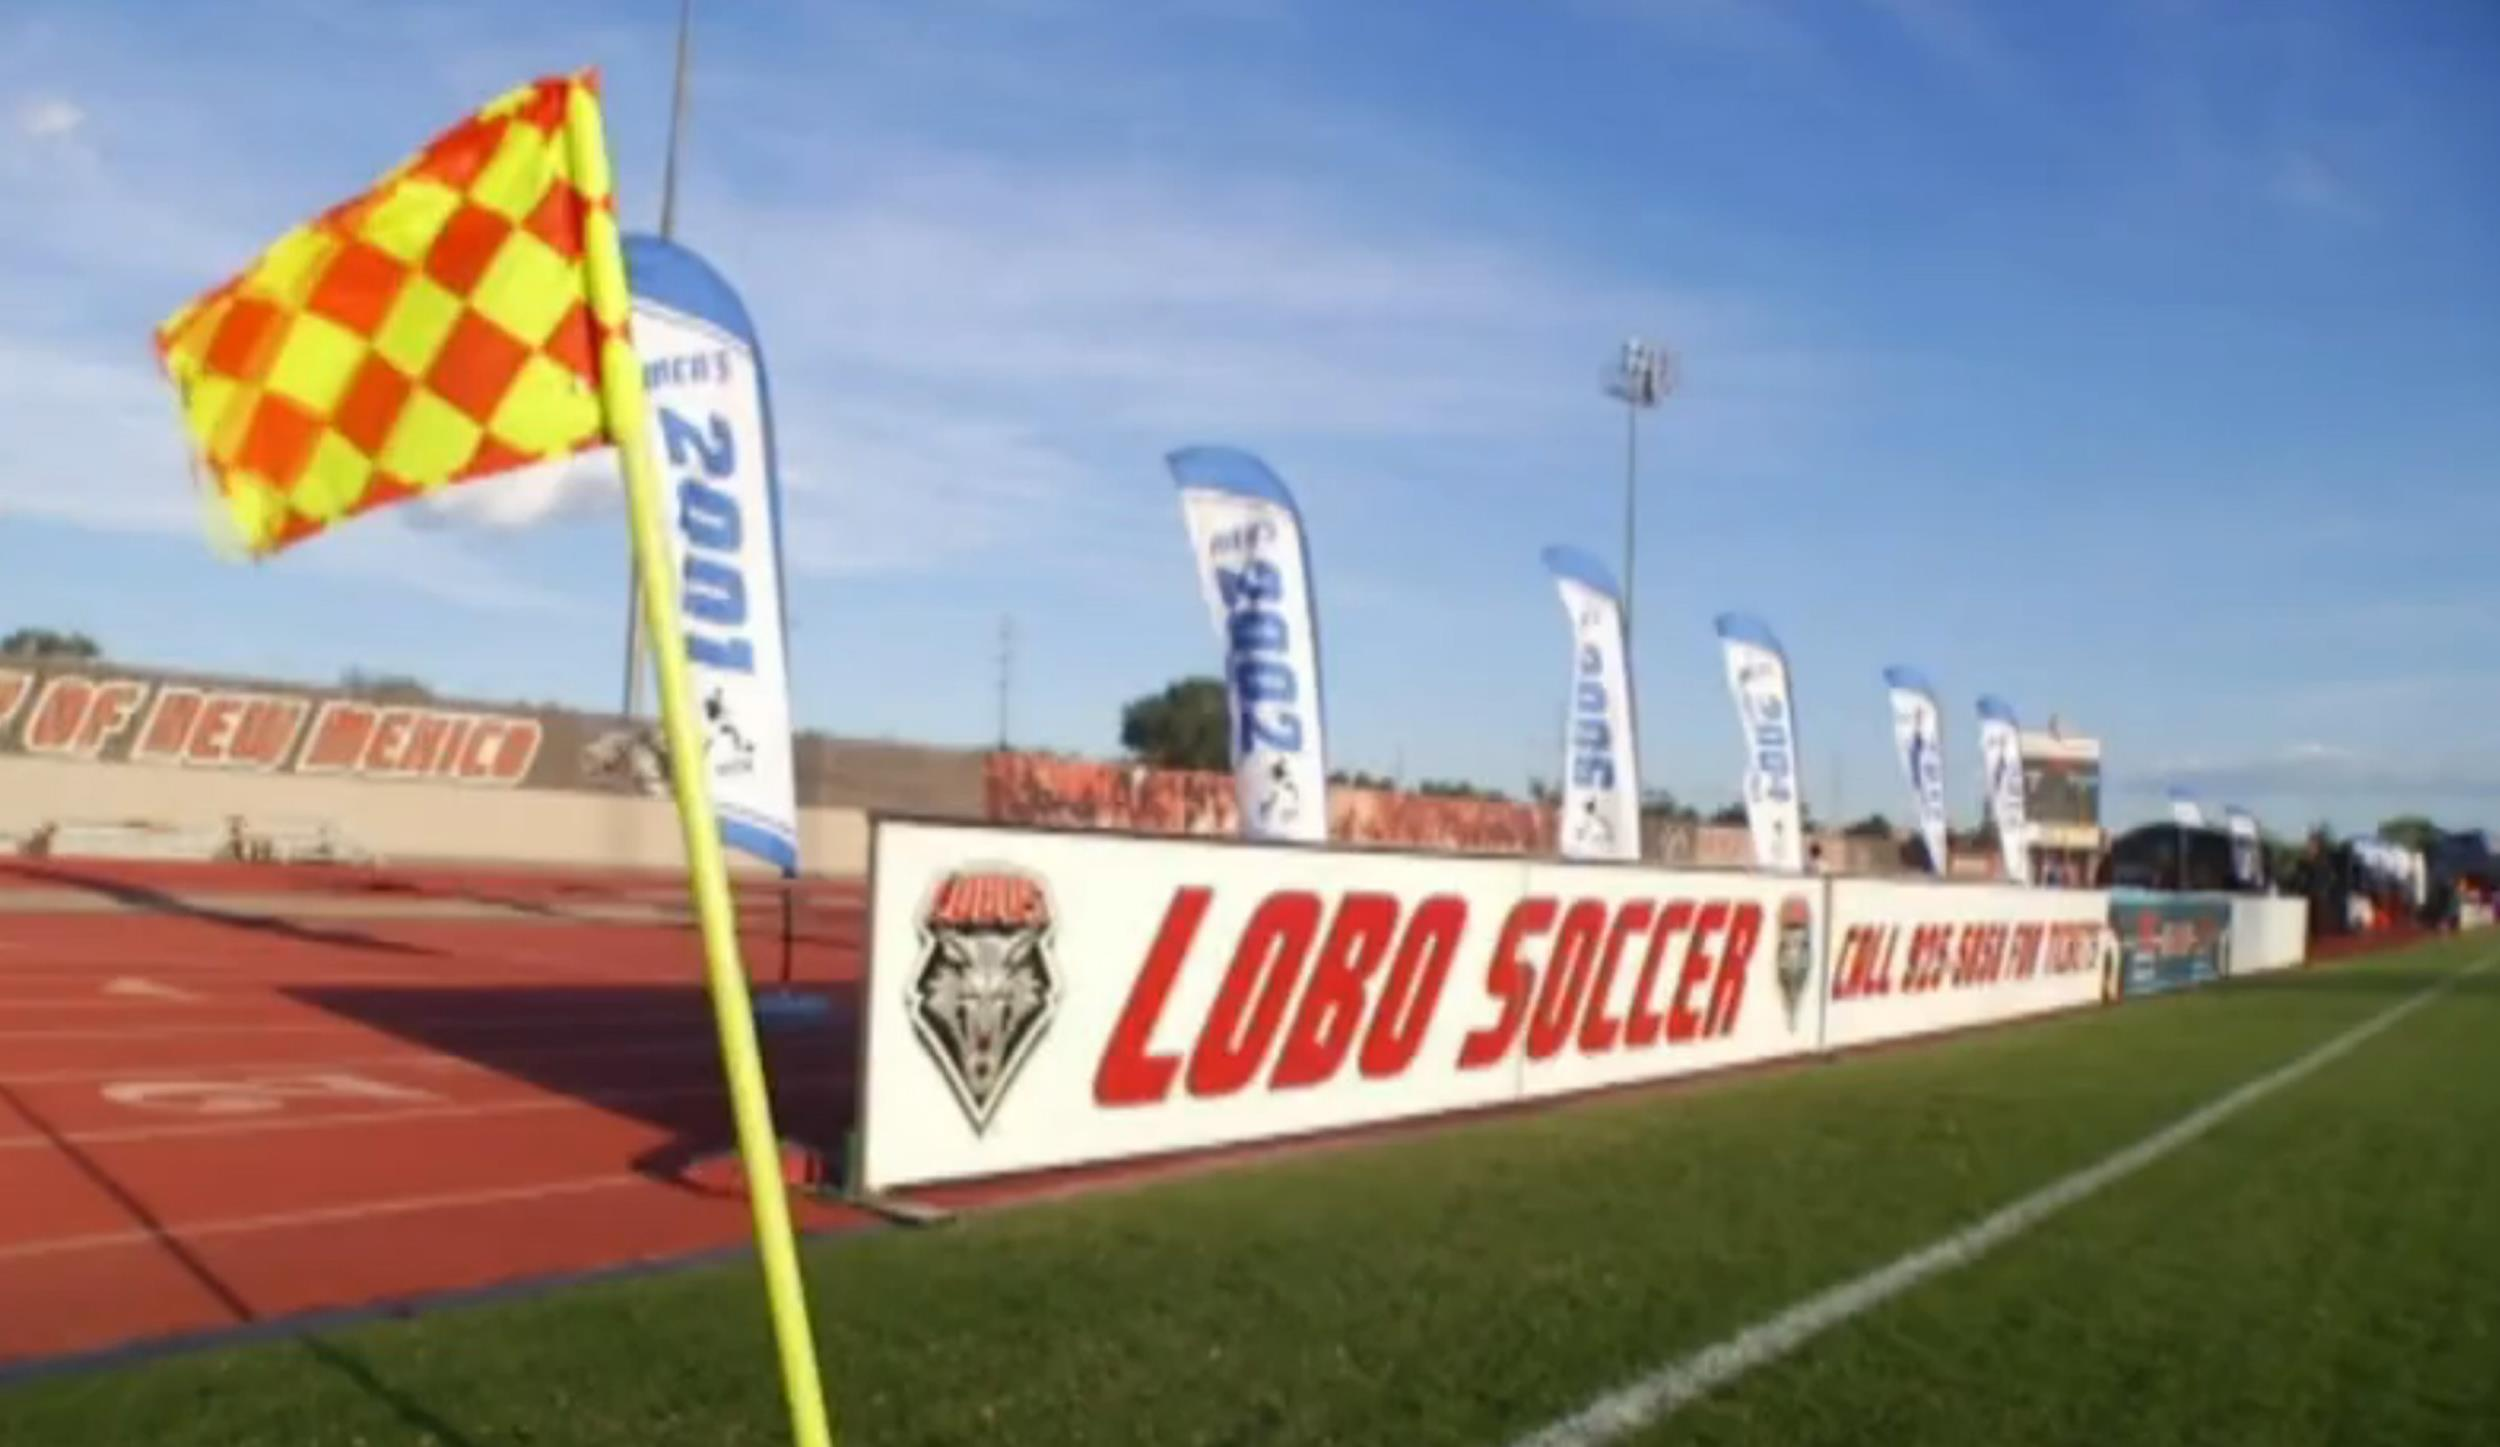 Image: A sign on a field for University of New Mexico's Lobo soccer team